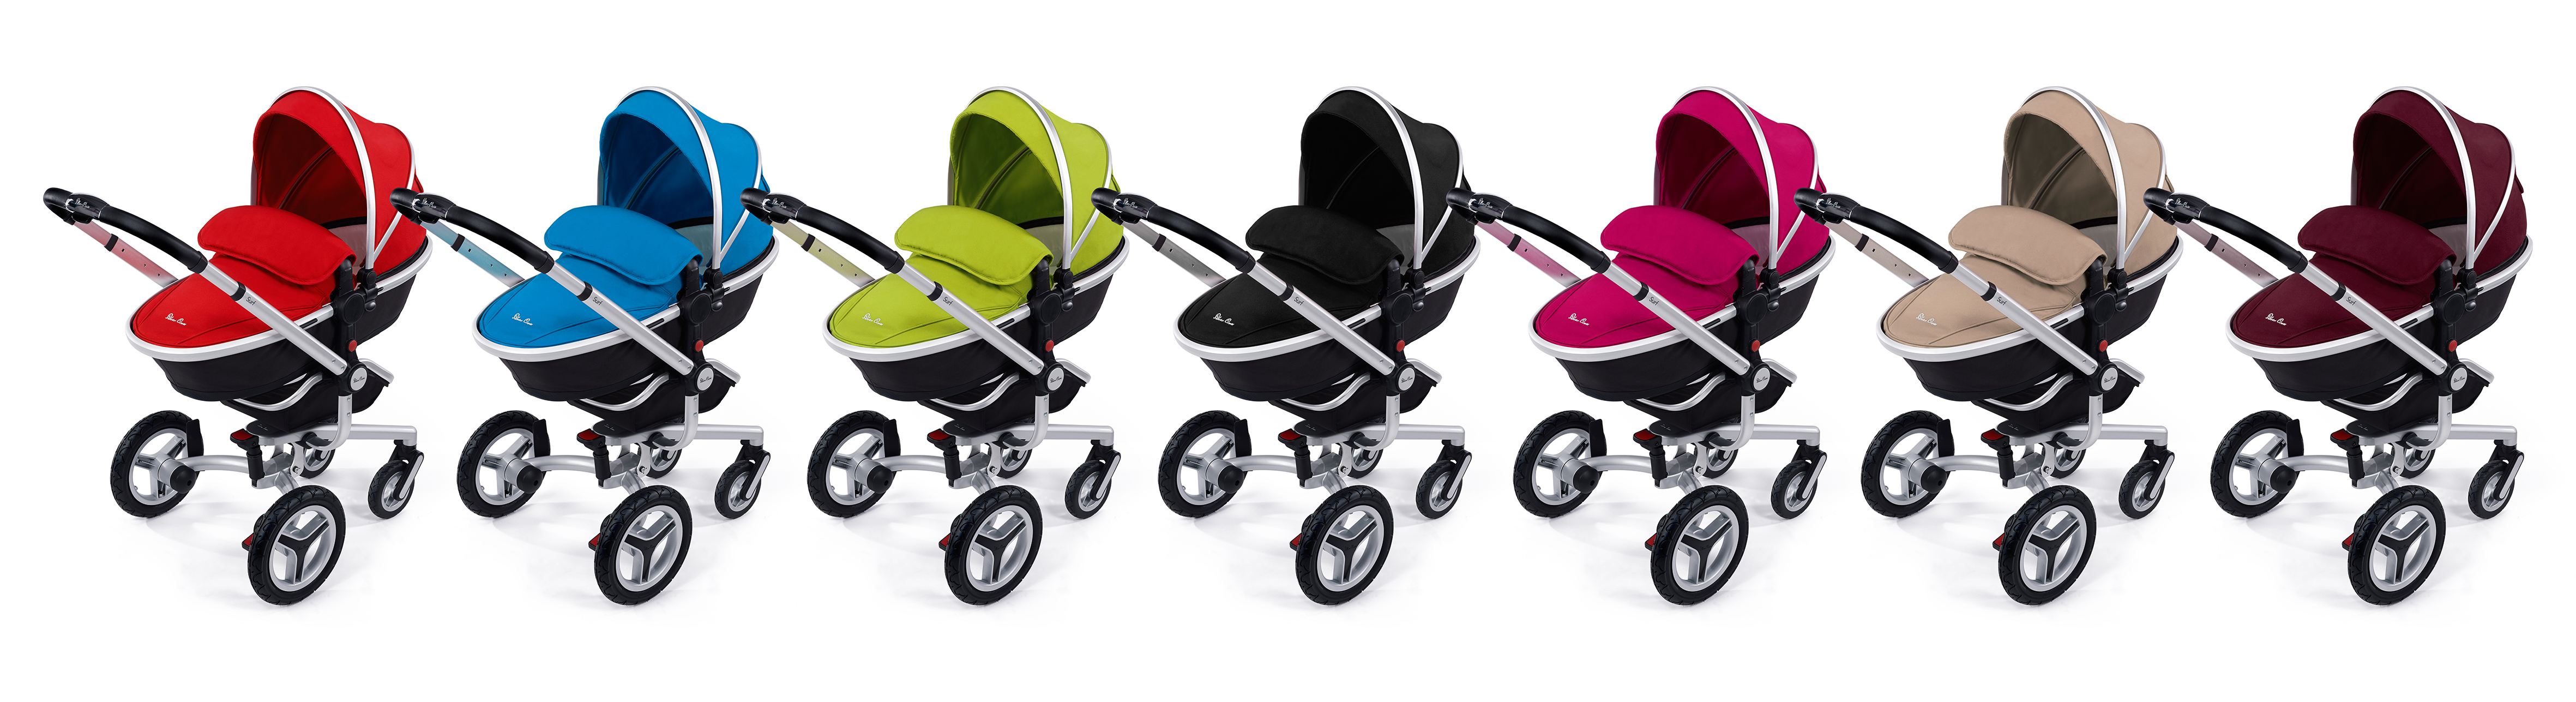 Surf 2014 Line Up - Carrycot